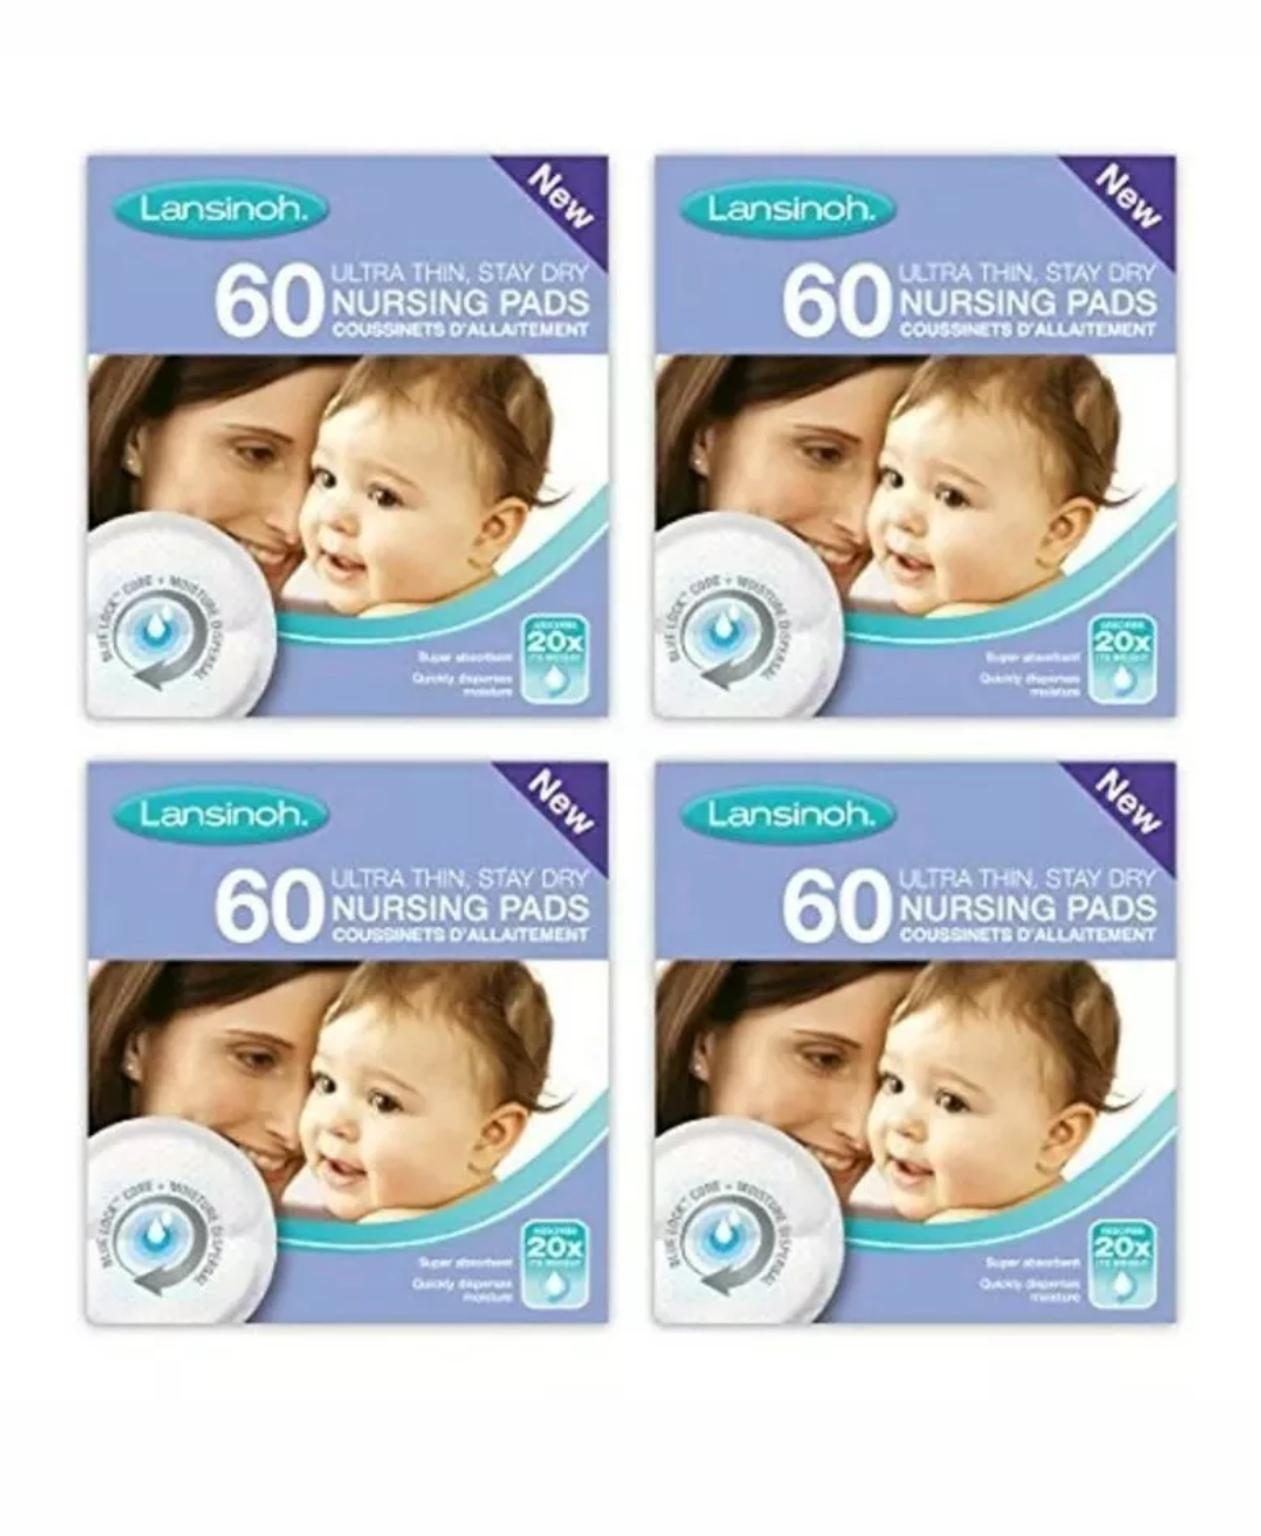 50 Pieces 4 x 60 Piece packs and Disposable Nursing Pads Lansinoh Breastmilk Storage Bags